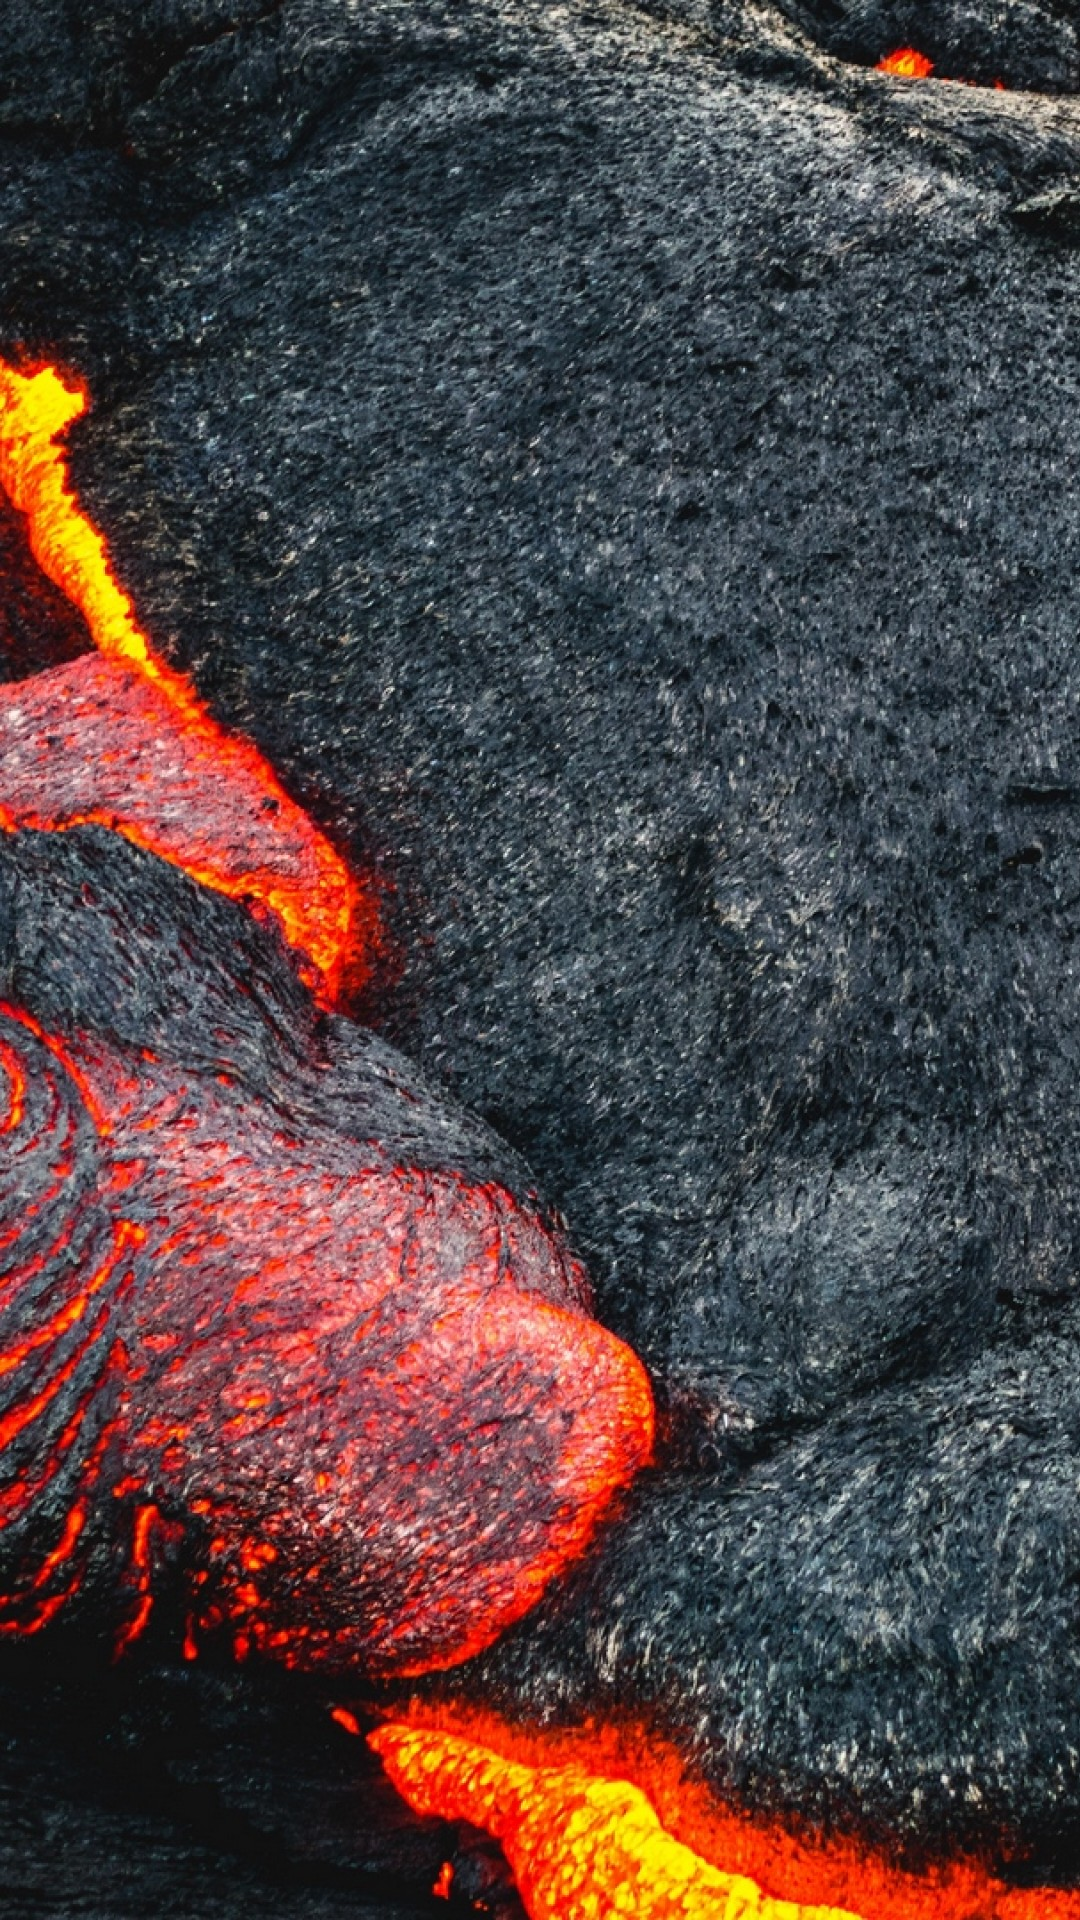 Lava Coming Out Of Volcano Hd Wallpaper Iphone 6 6s Plus